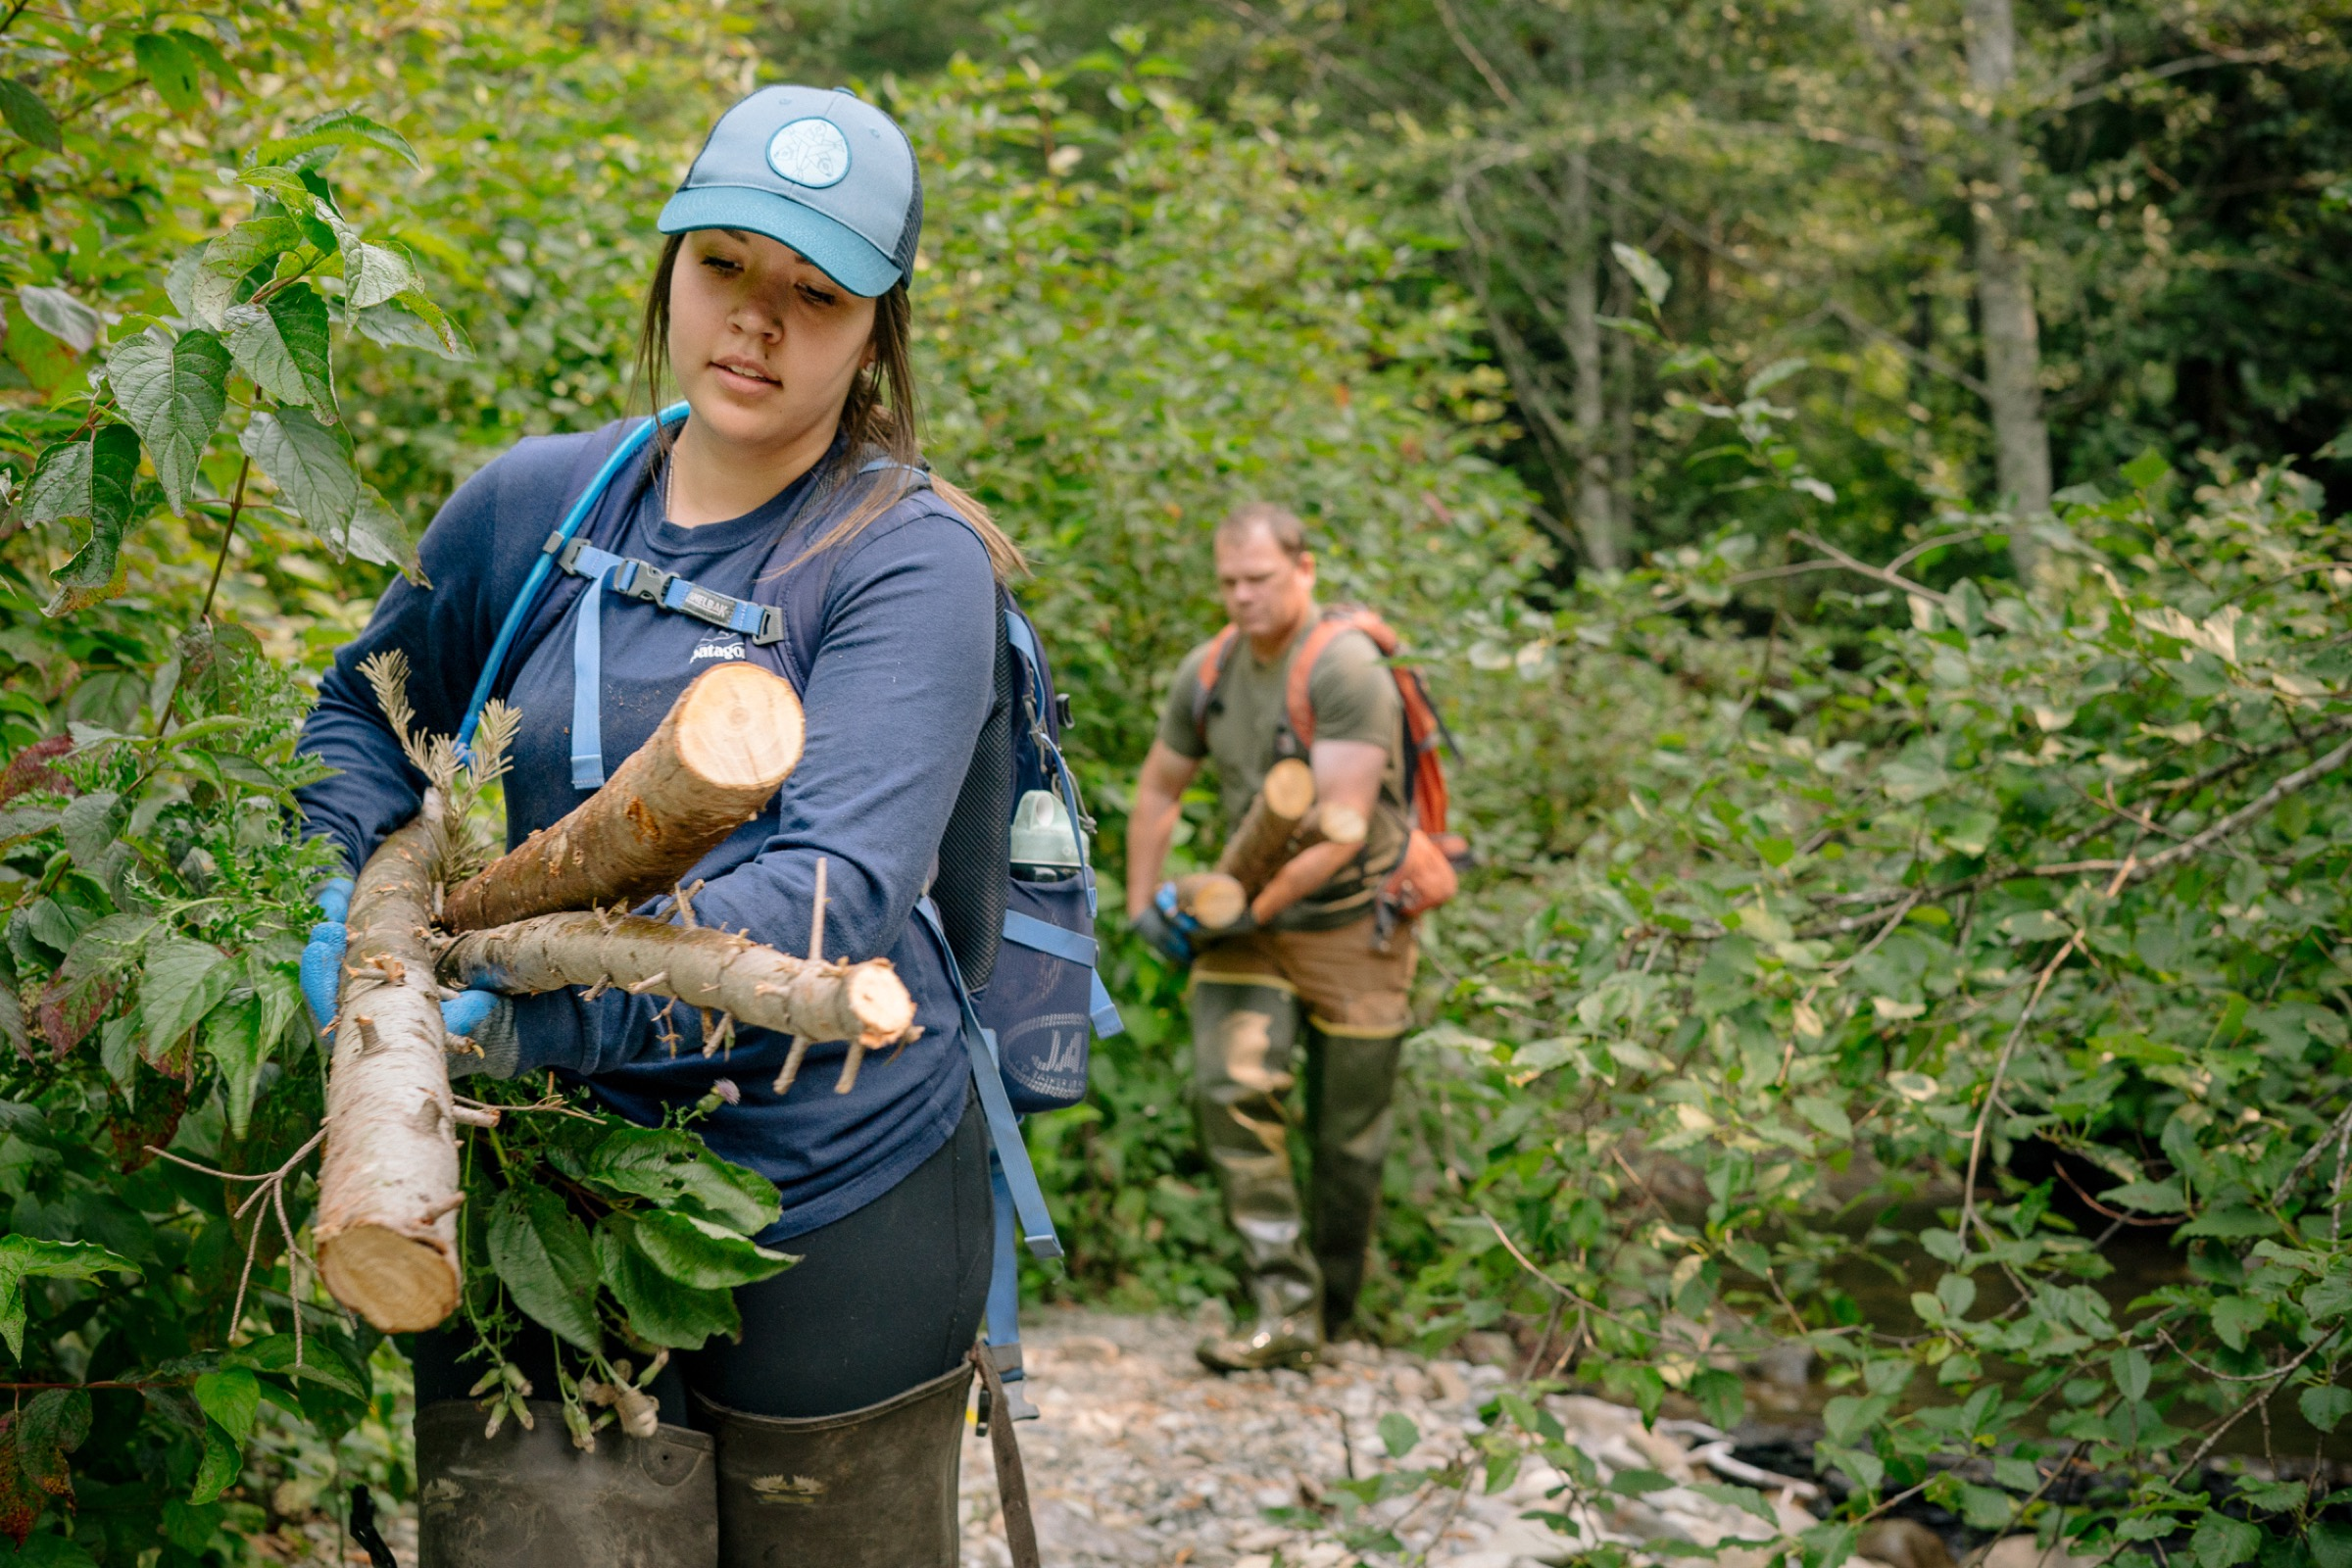 Tulalip biologists and volunteers haul tree trunks and branches to a section of stream where they plan to construct a beaver dam analogue.